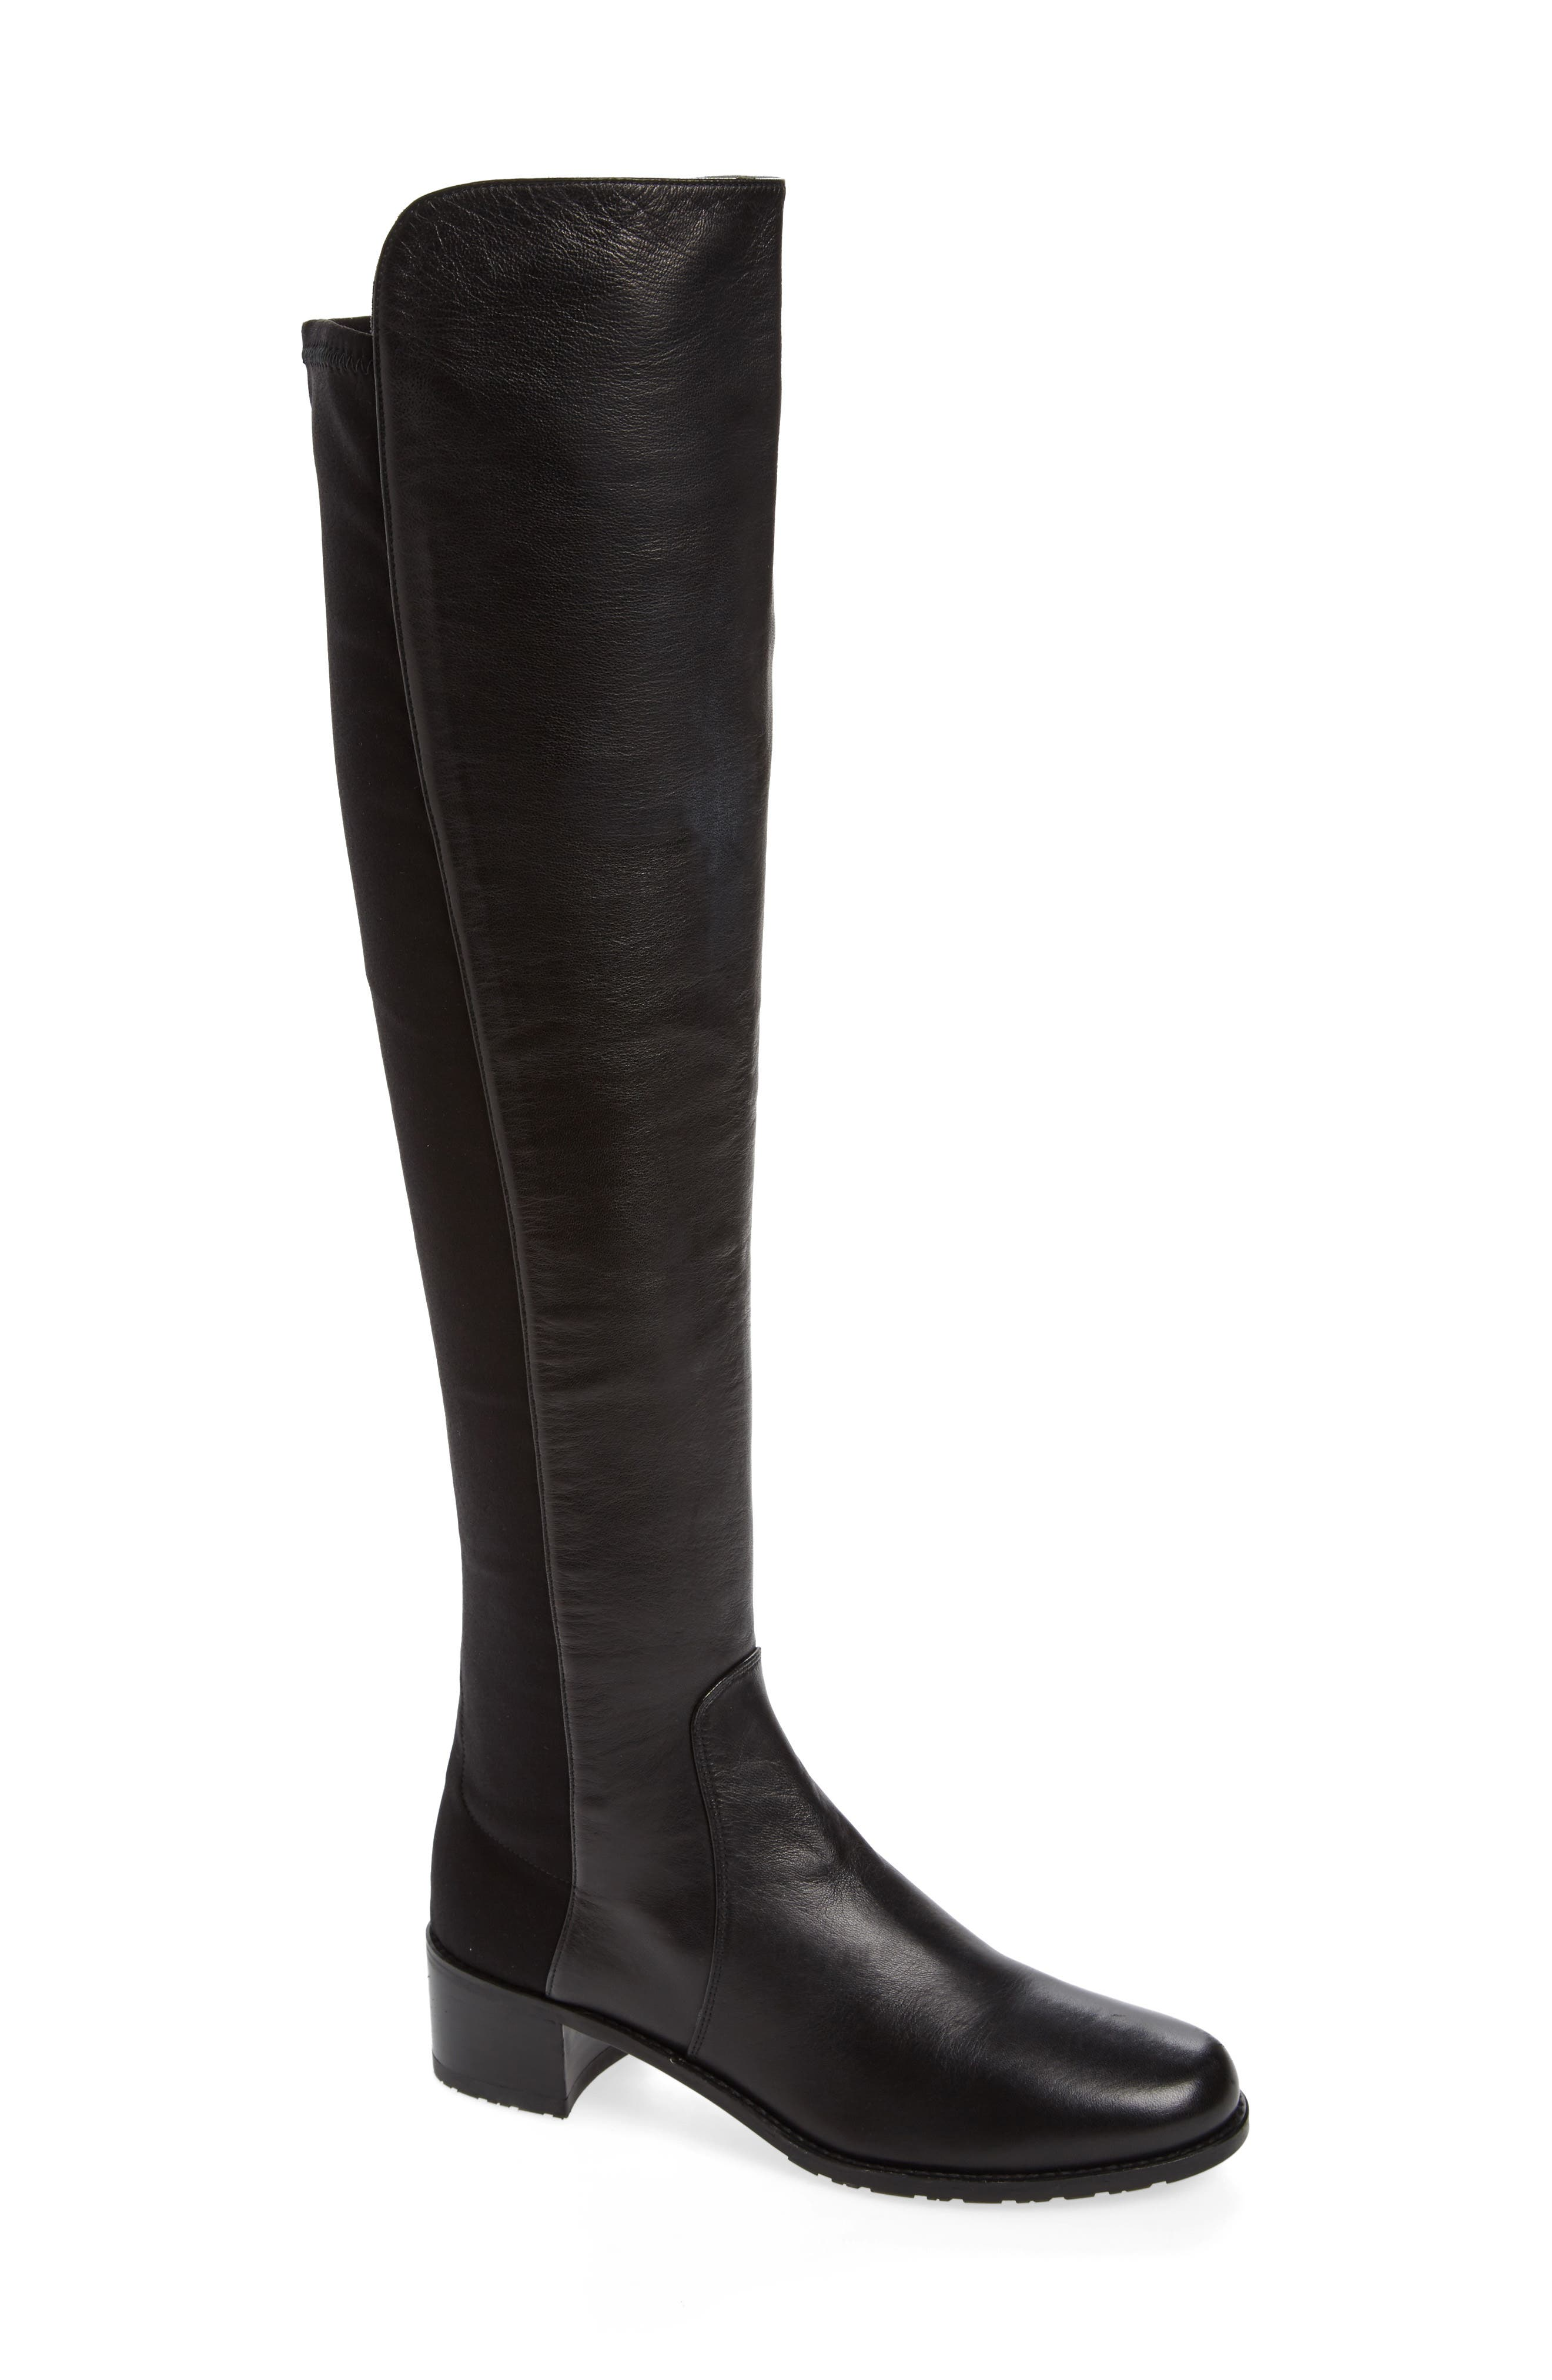 ad4a938505933d Stuart Weitzman  Reserve  Over The Knee Boot